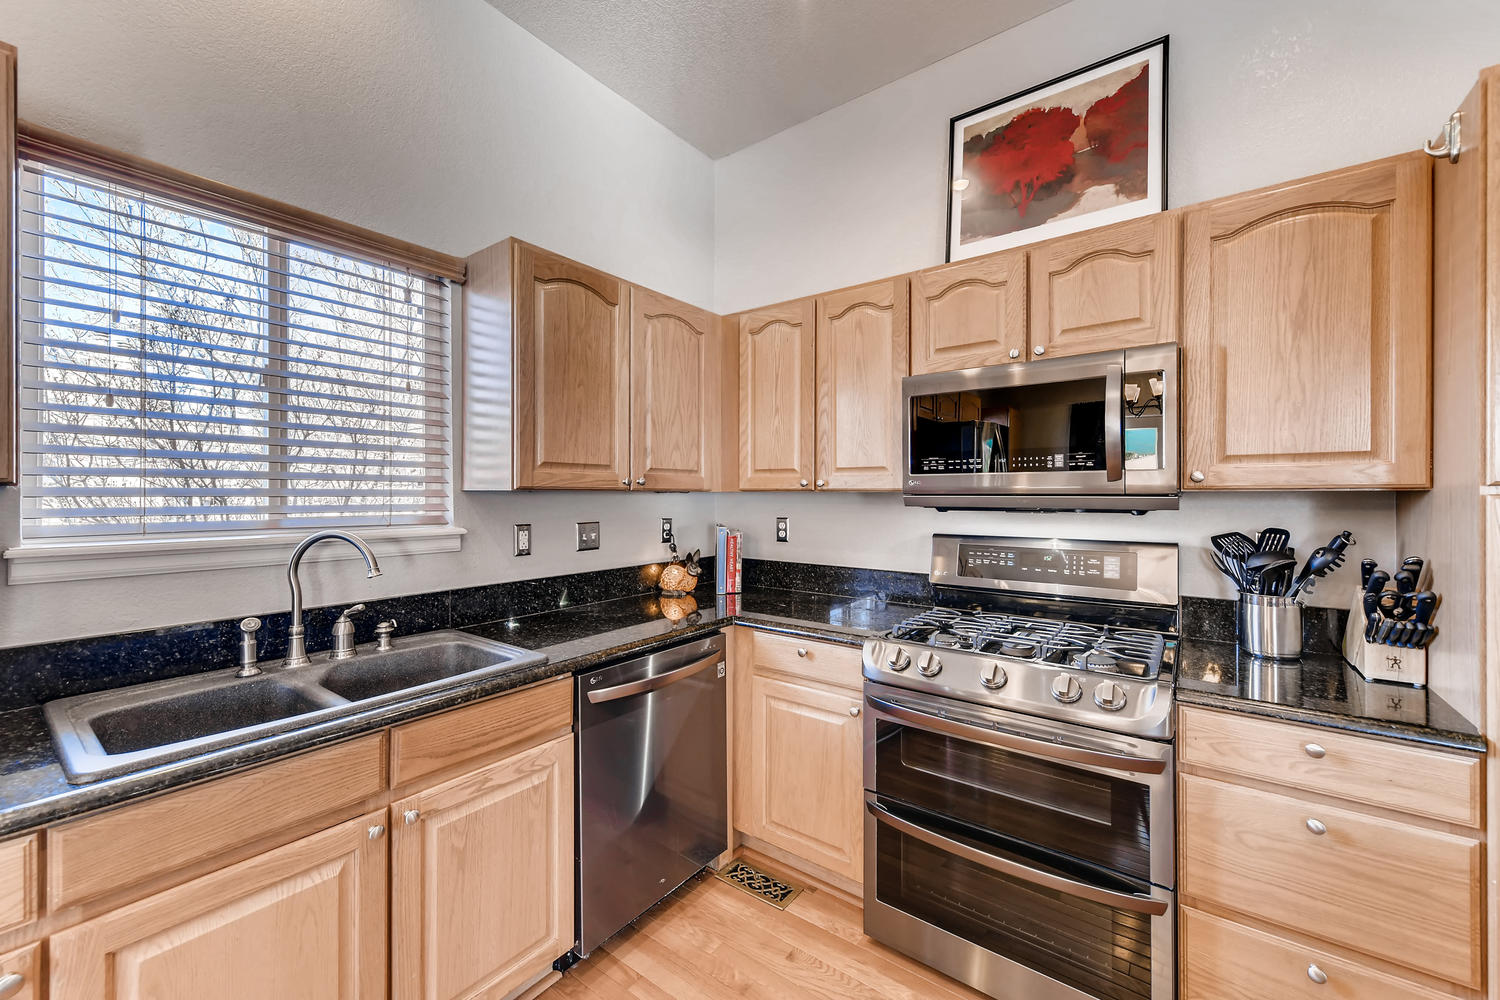 NEW LISTING: 1803 S Tamarac St Denver CO Kitchen